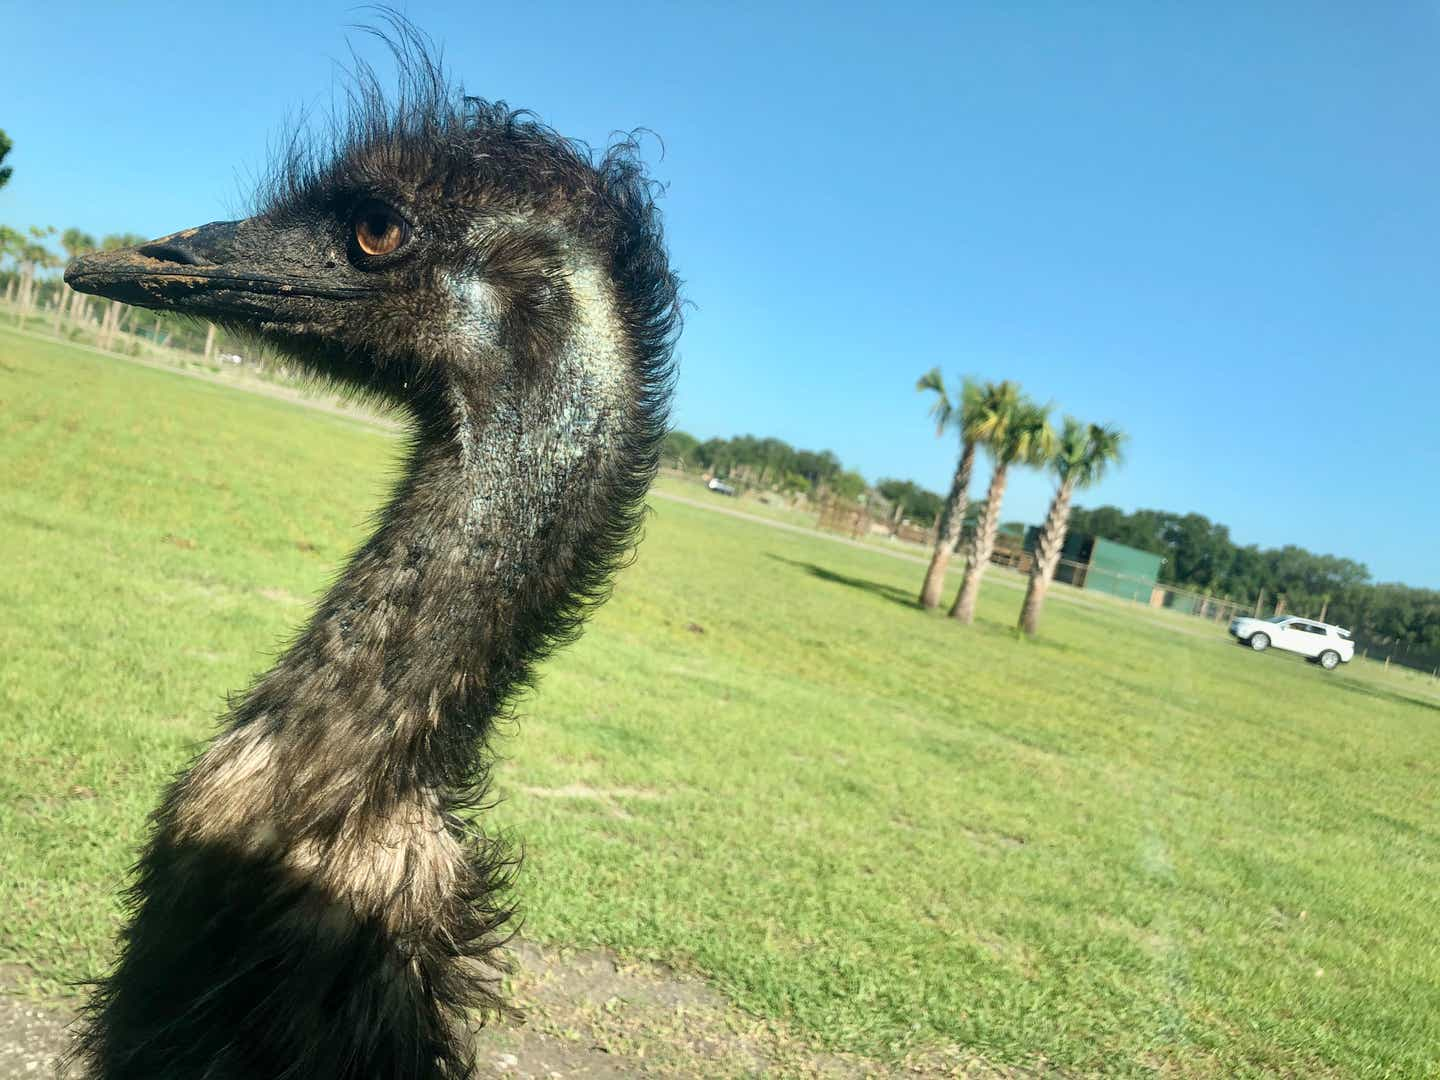 Close up of an emu at Wild Florida safari park